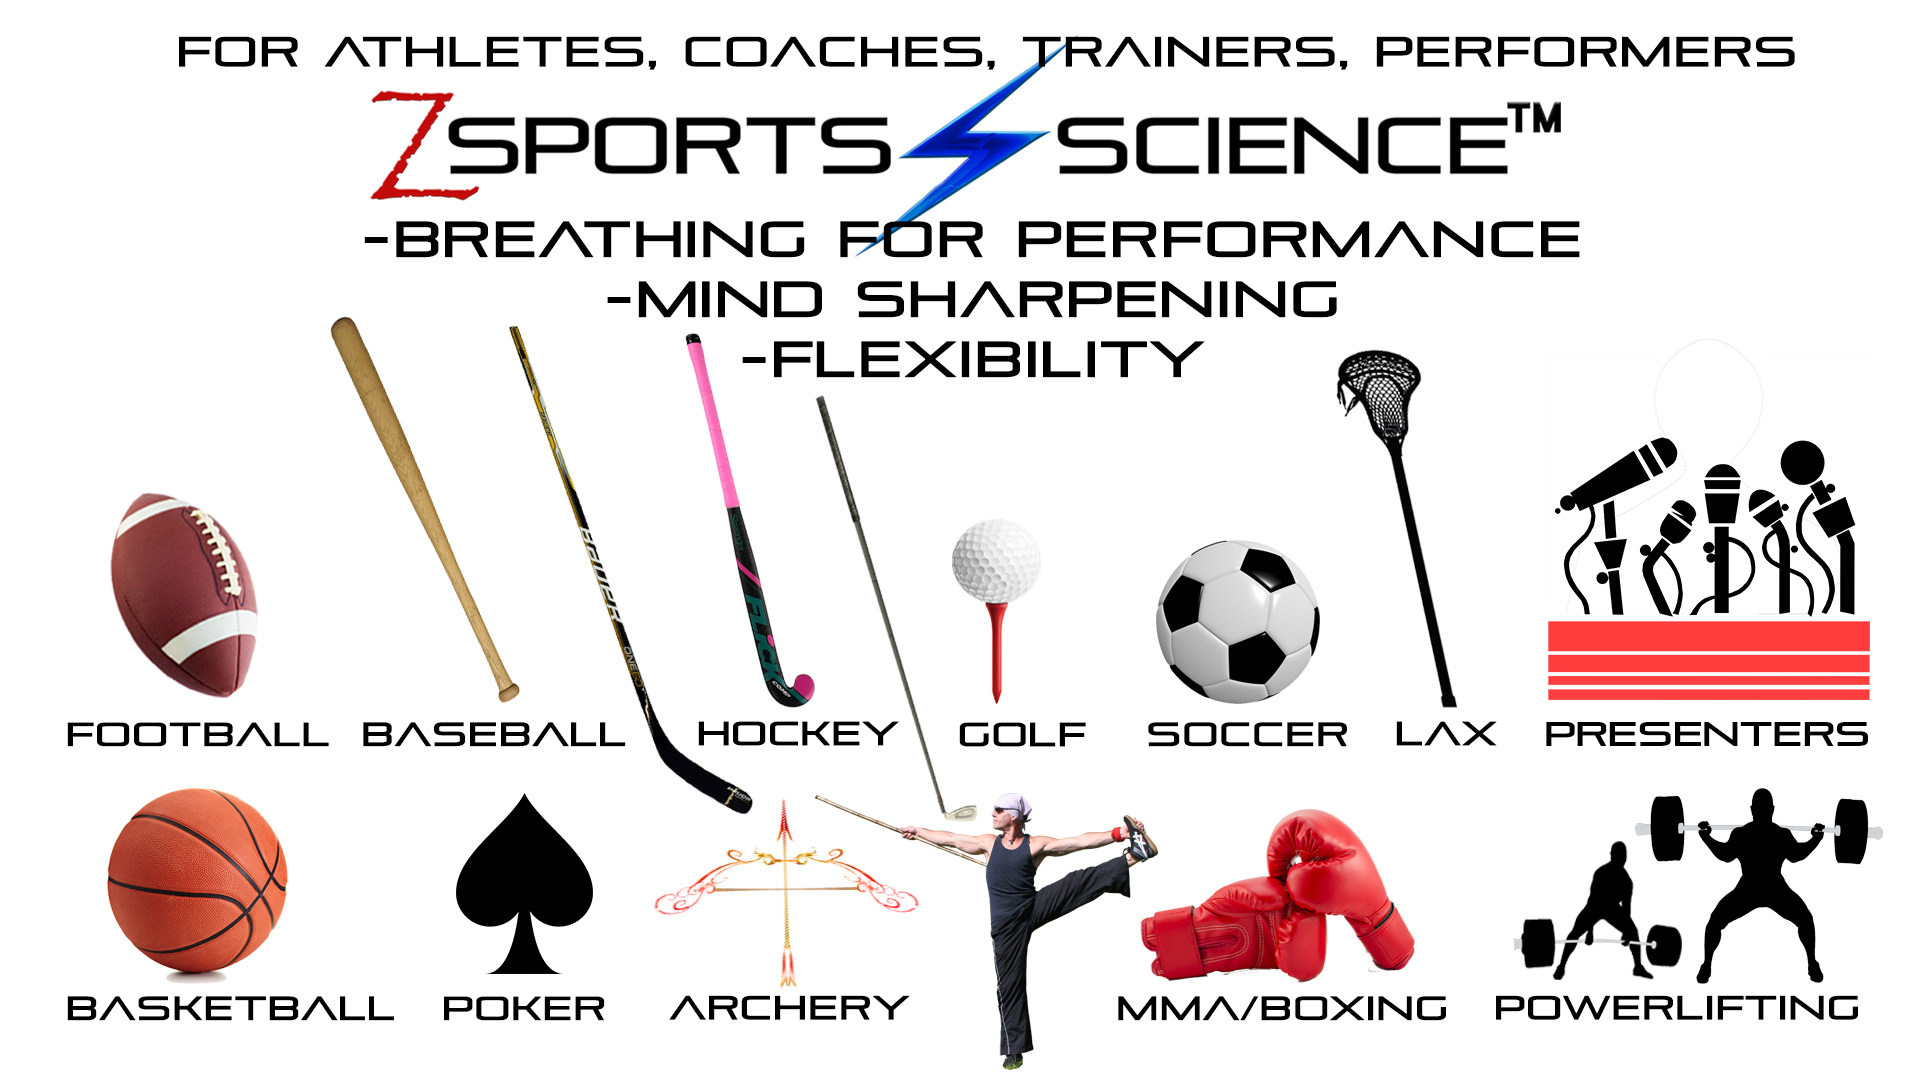 Sports and Performers card